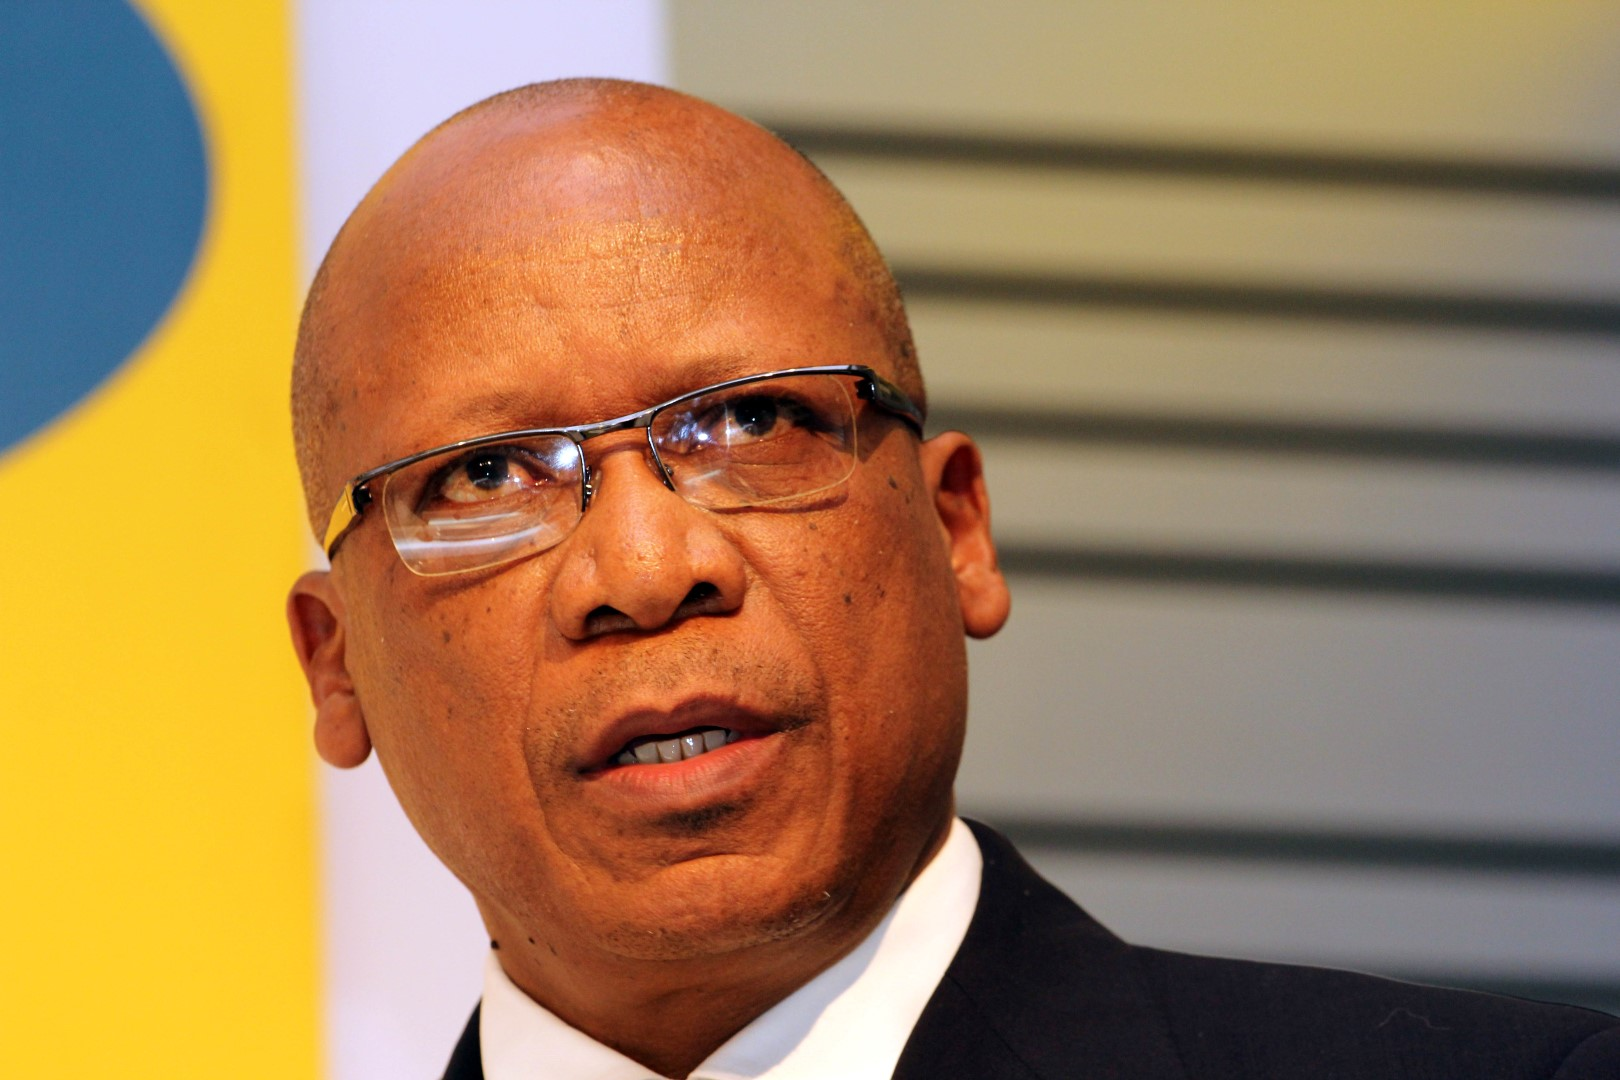 MTN Group CEO, Sifiso Dabengwa Resigns Over $5.2 Billion NCC Fine